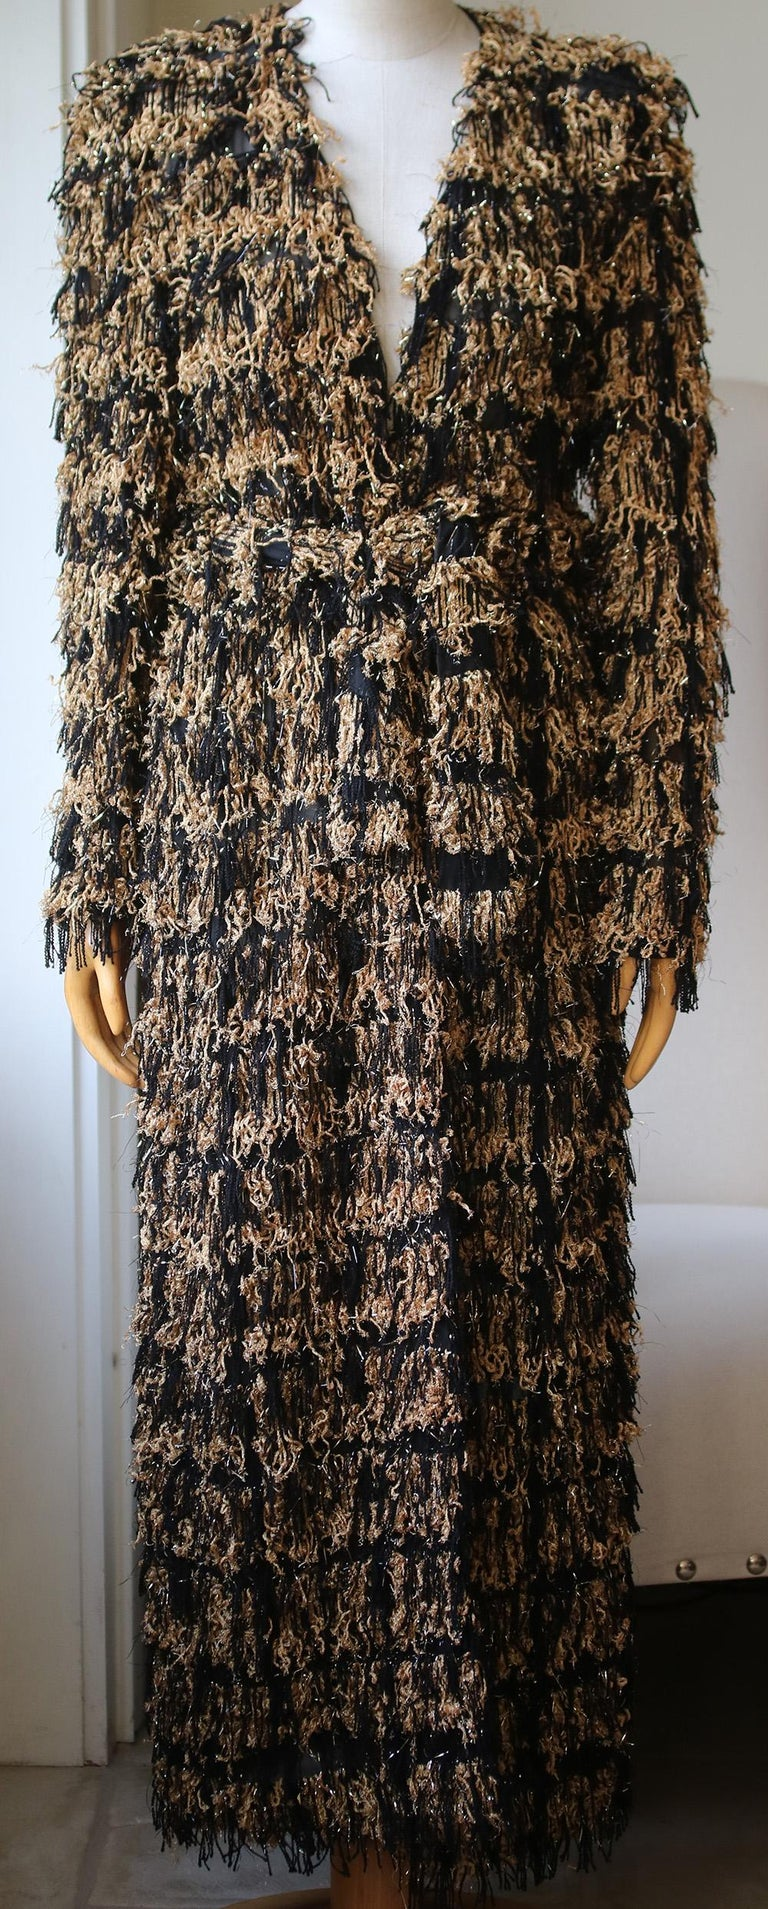 Exuding the extroverted aesthetic of Balmain, this longline cardigan is rendered in a metallic fringed tweed, lending a dose of the brand's signature glamour to your portfolio. Finished with exaggerated shoulders and a tie belt to define the waist,